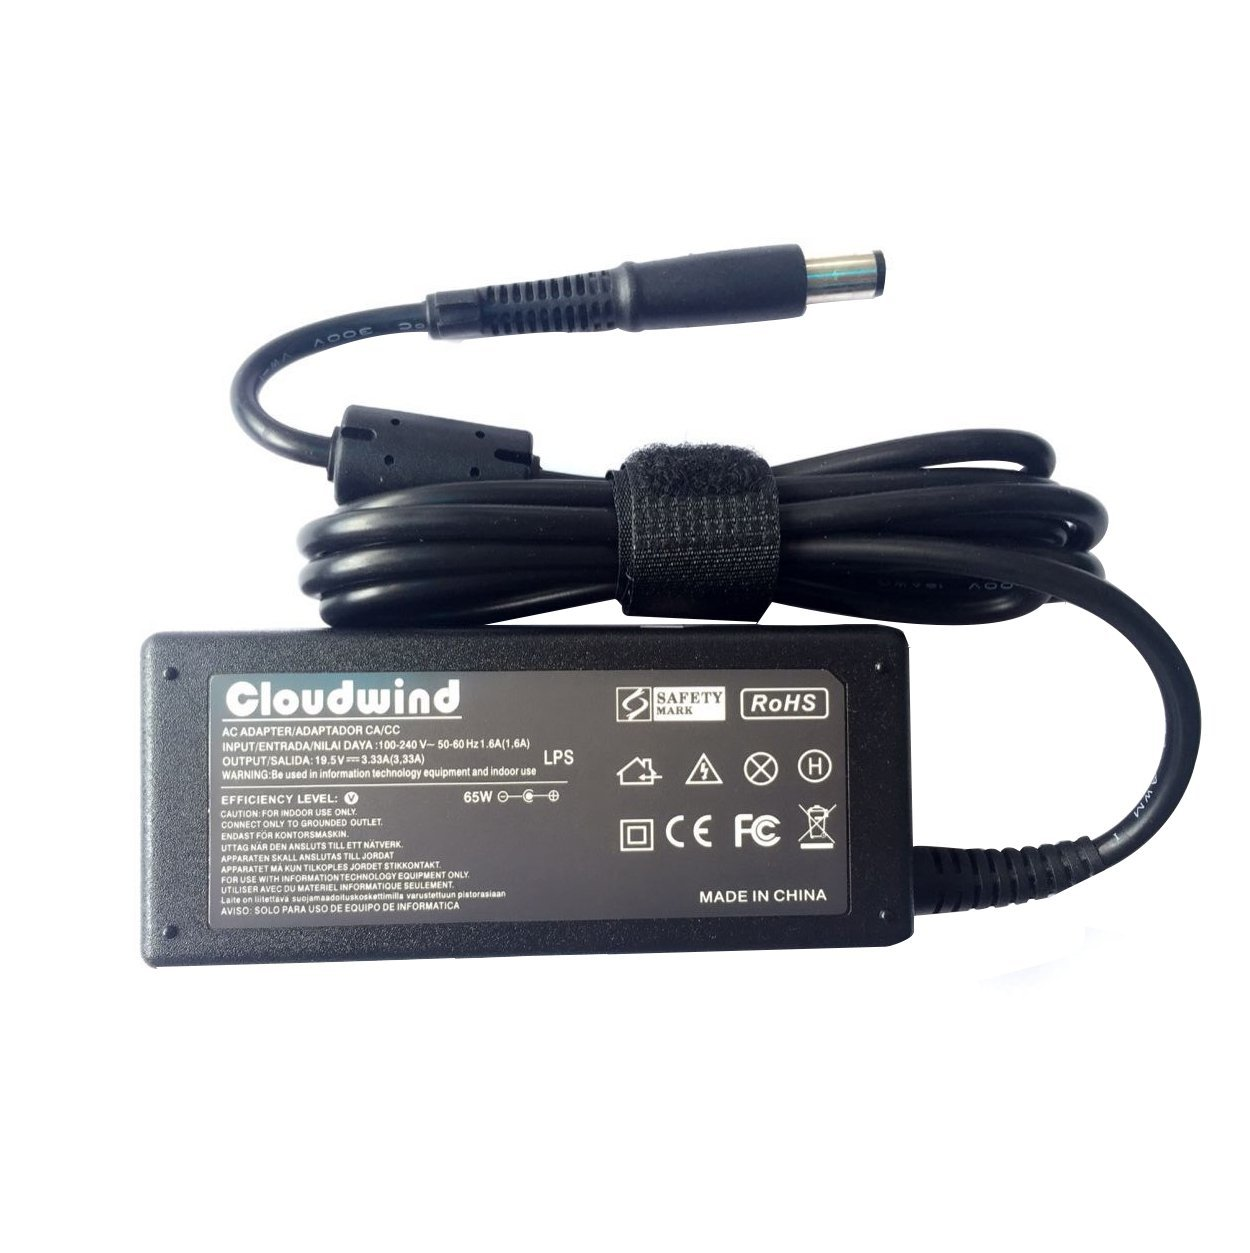 Cloudwind 19.5V 3.33A 65W Replacement AC Adapter for For HP 677774-001 2000-2C29WM 2000-2B19WM 693711-001,HP Compaq,Dv6,Dv7 Series Laptop, AC Adapter Charger Power Cord Included.